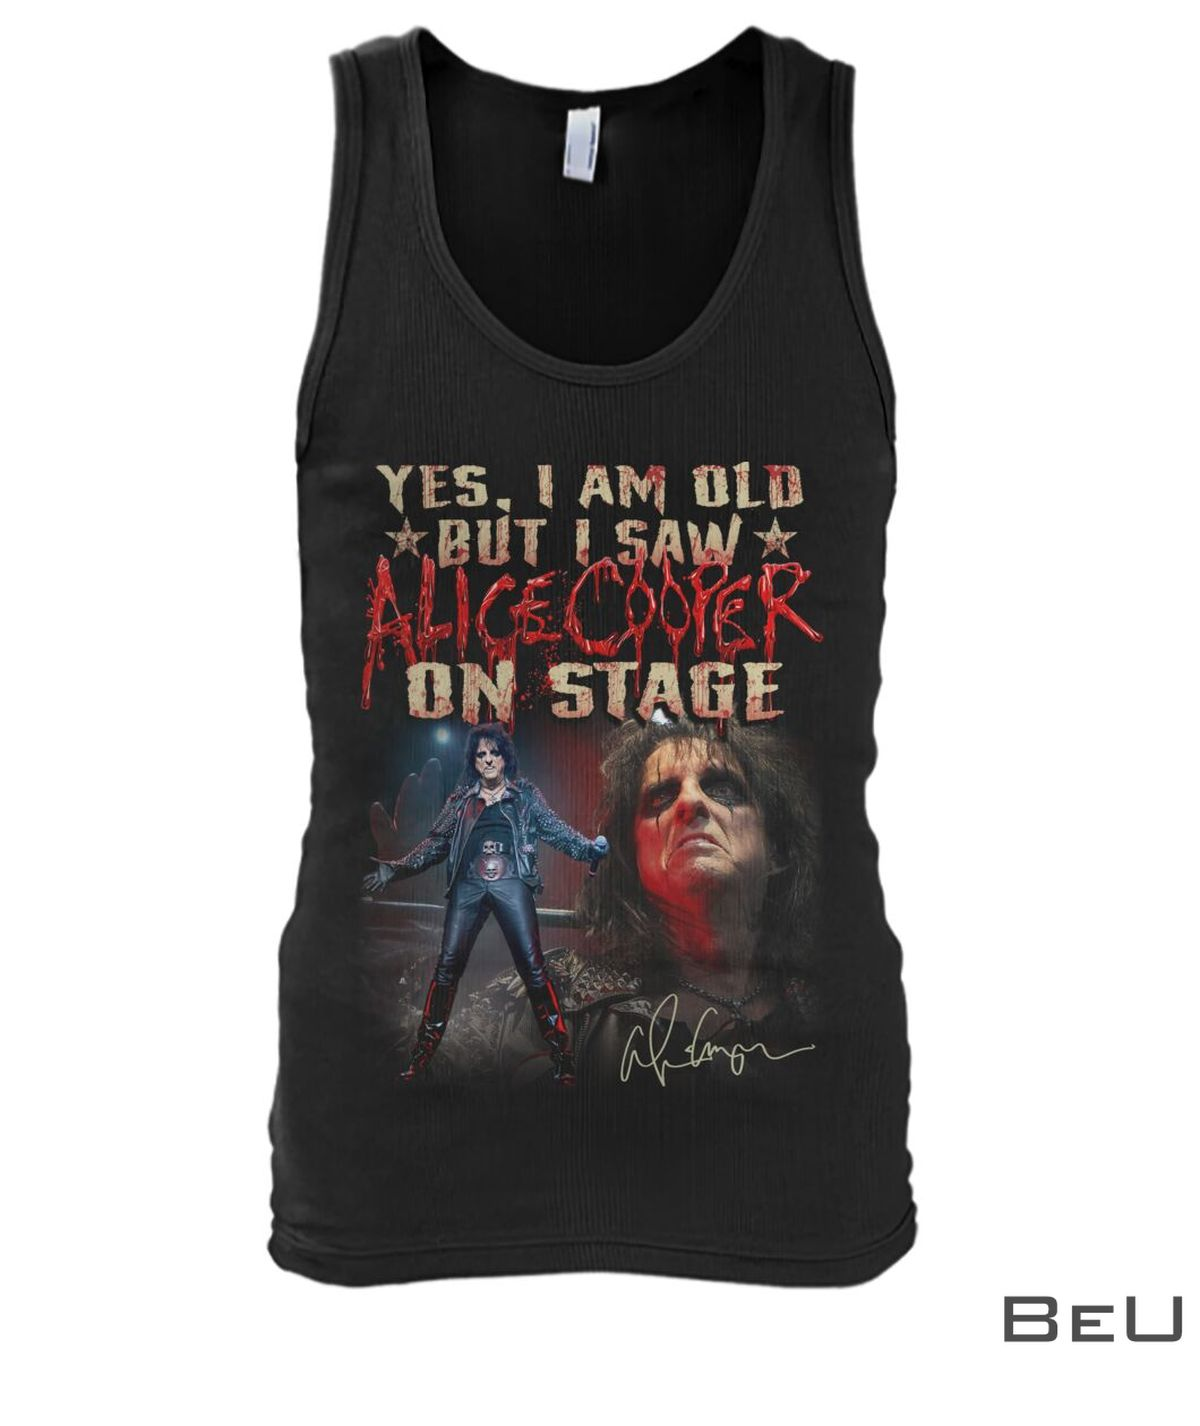 Yes I Am Old But I Saw Alice Cooper On Stage Shirtx